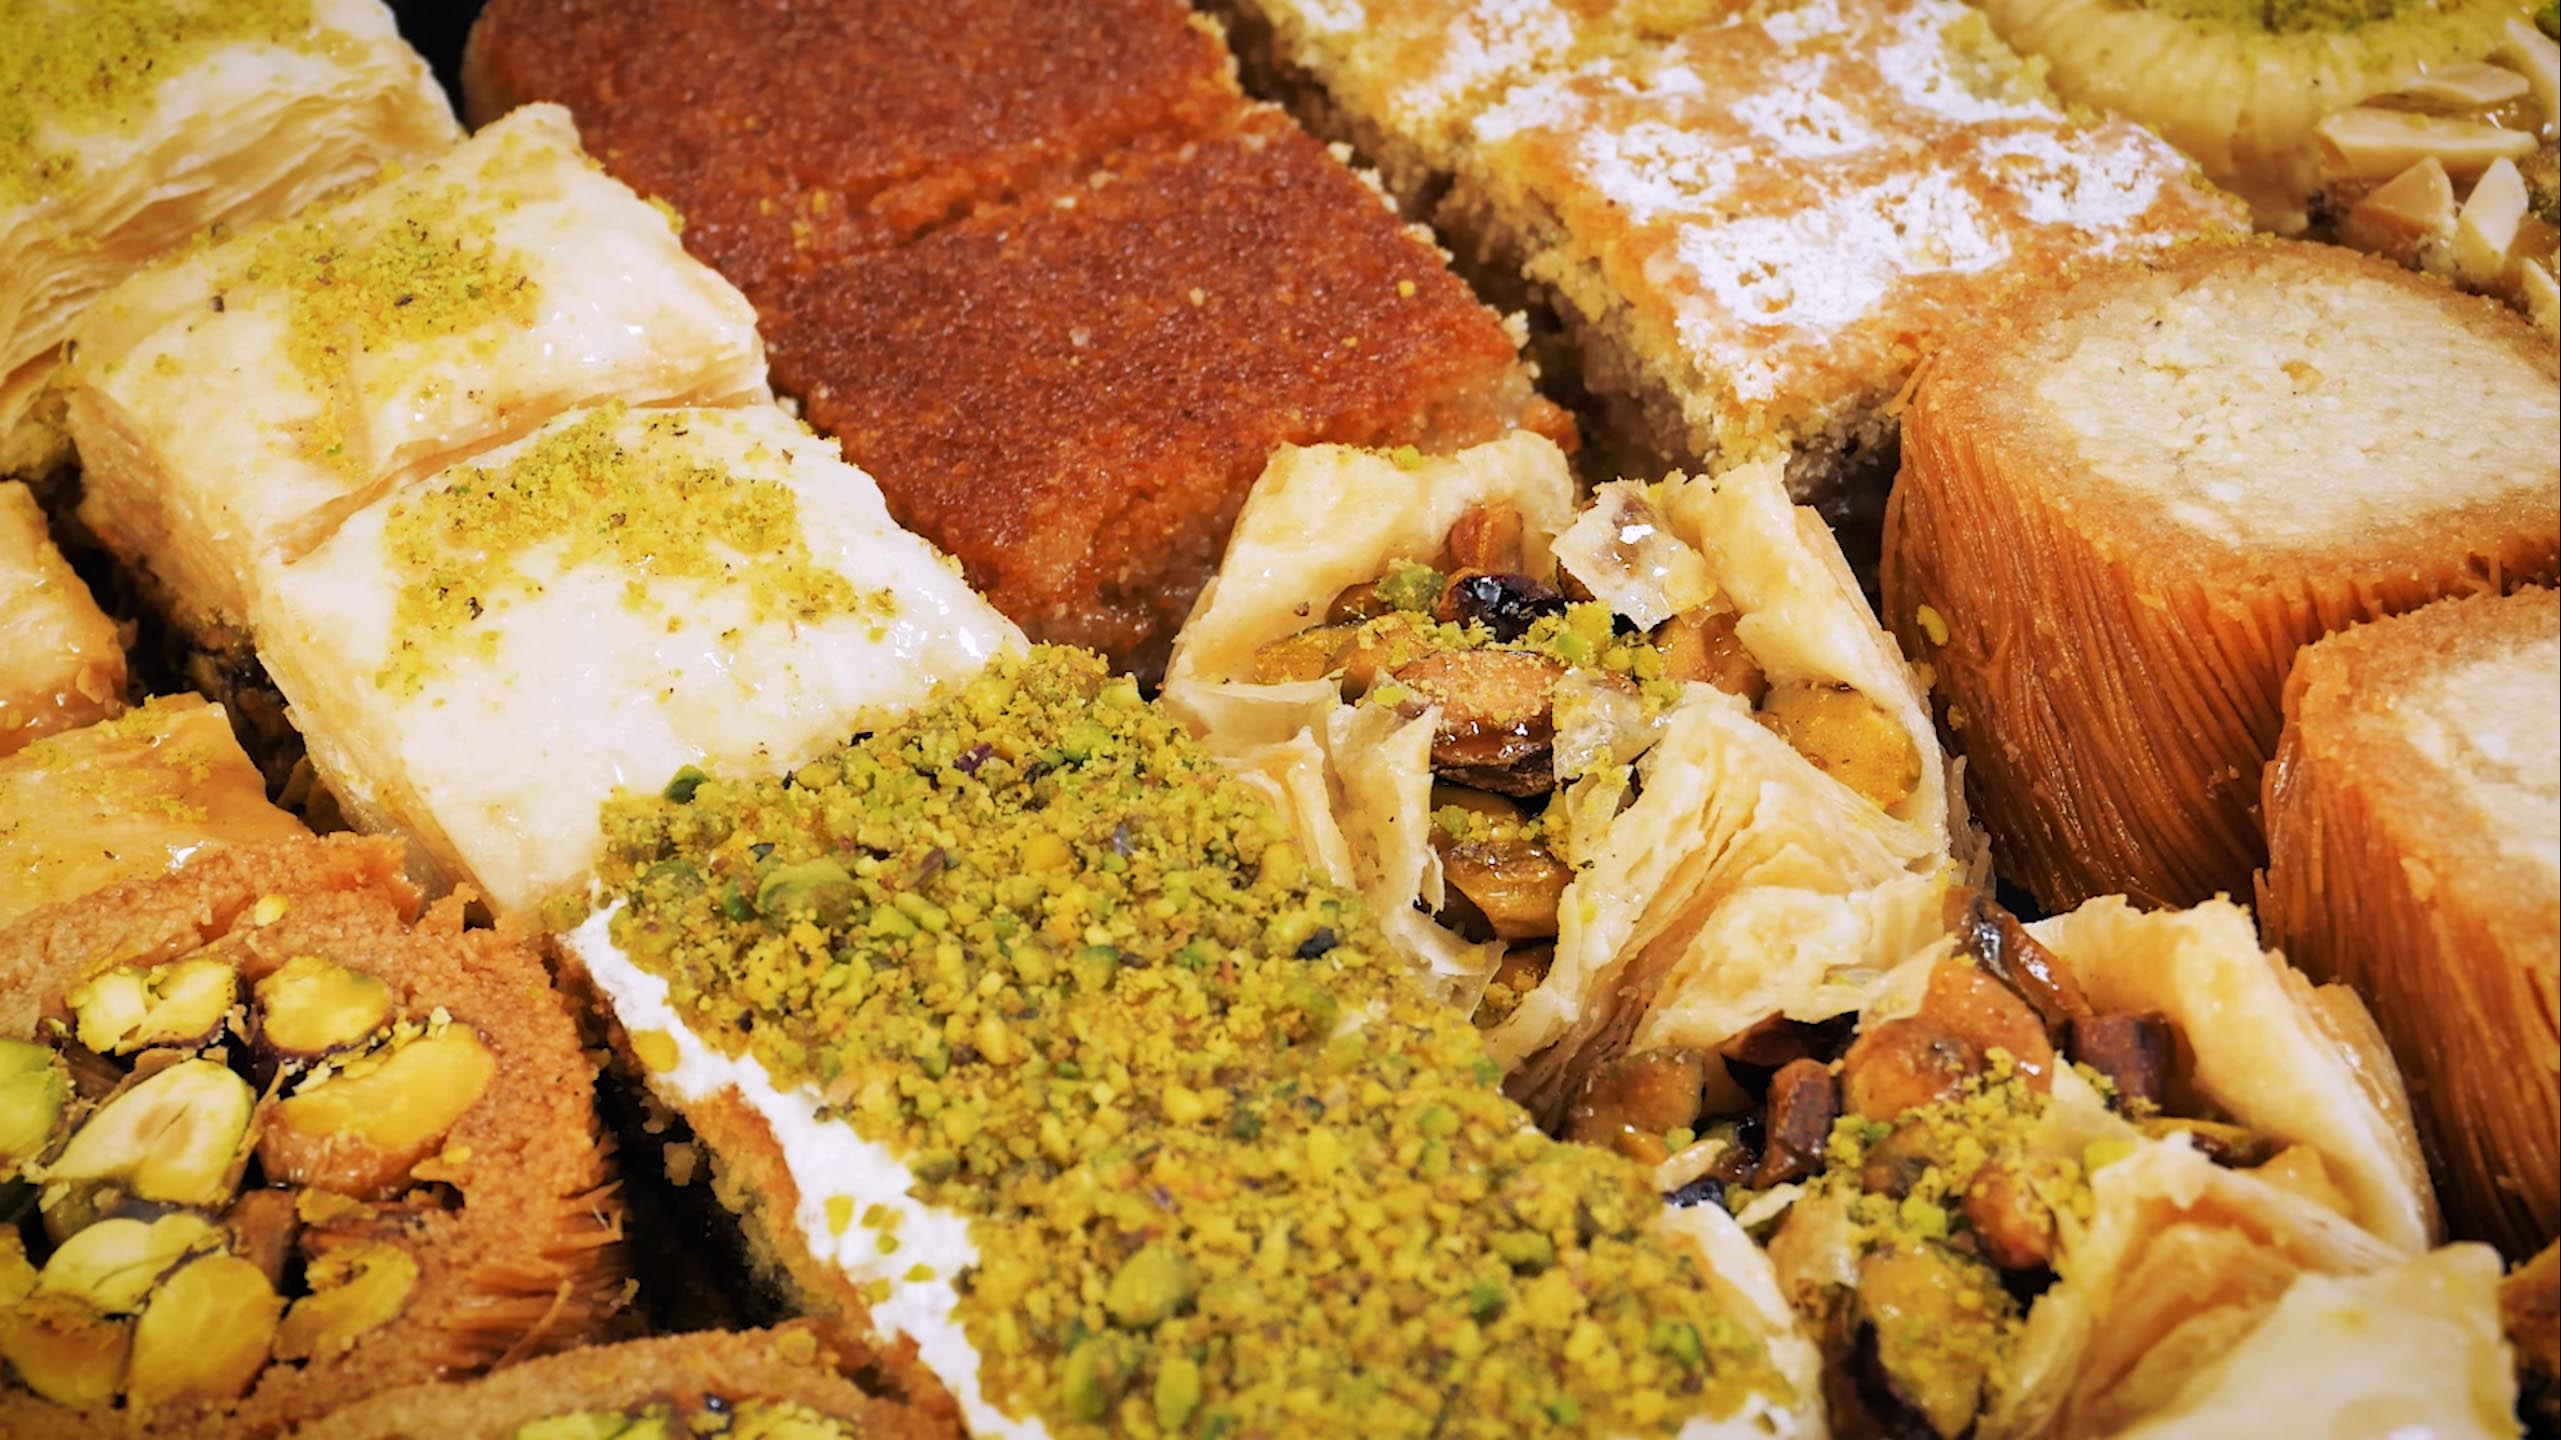 Baklawa King – Finest Middle Eastern Pastries – Finest & Freshest